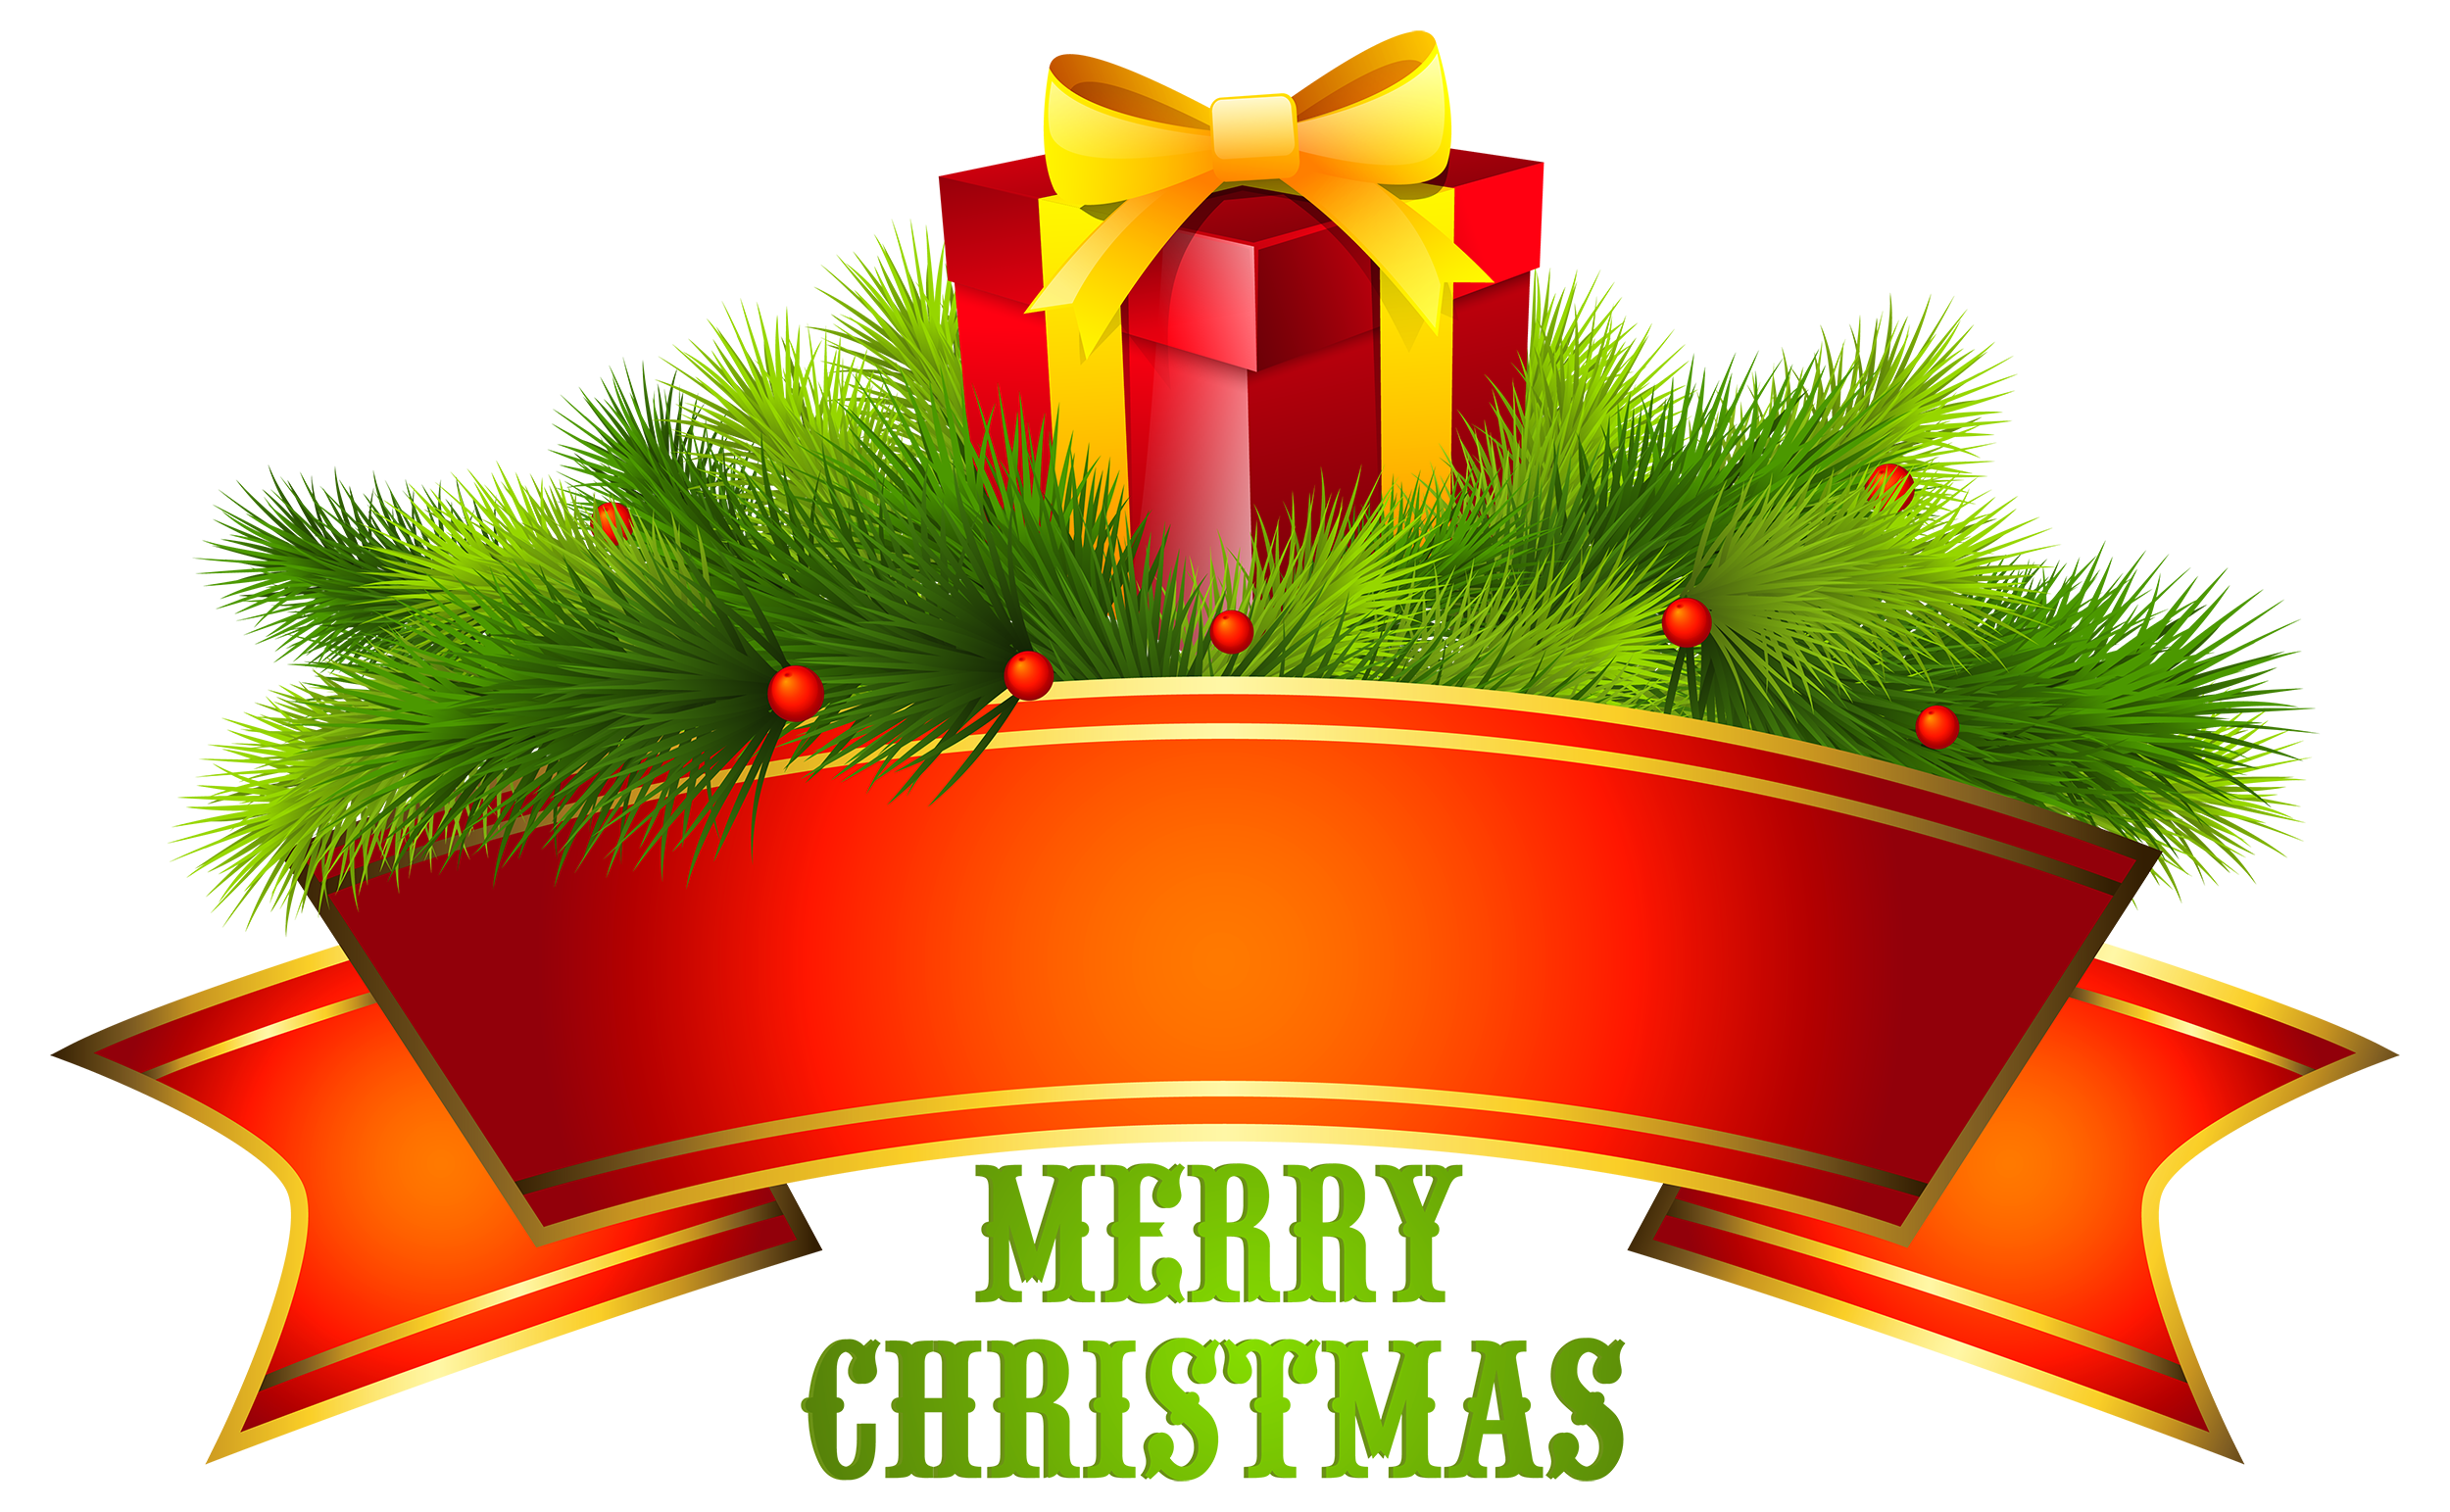 Decoration clipart file. Merry christmas text decor